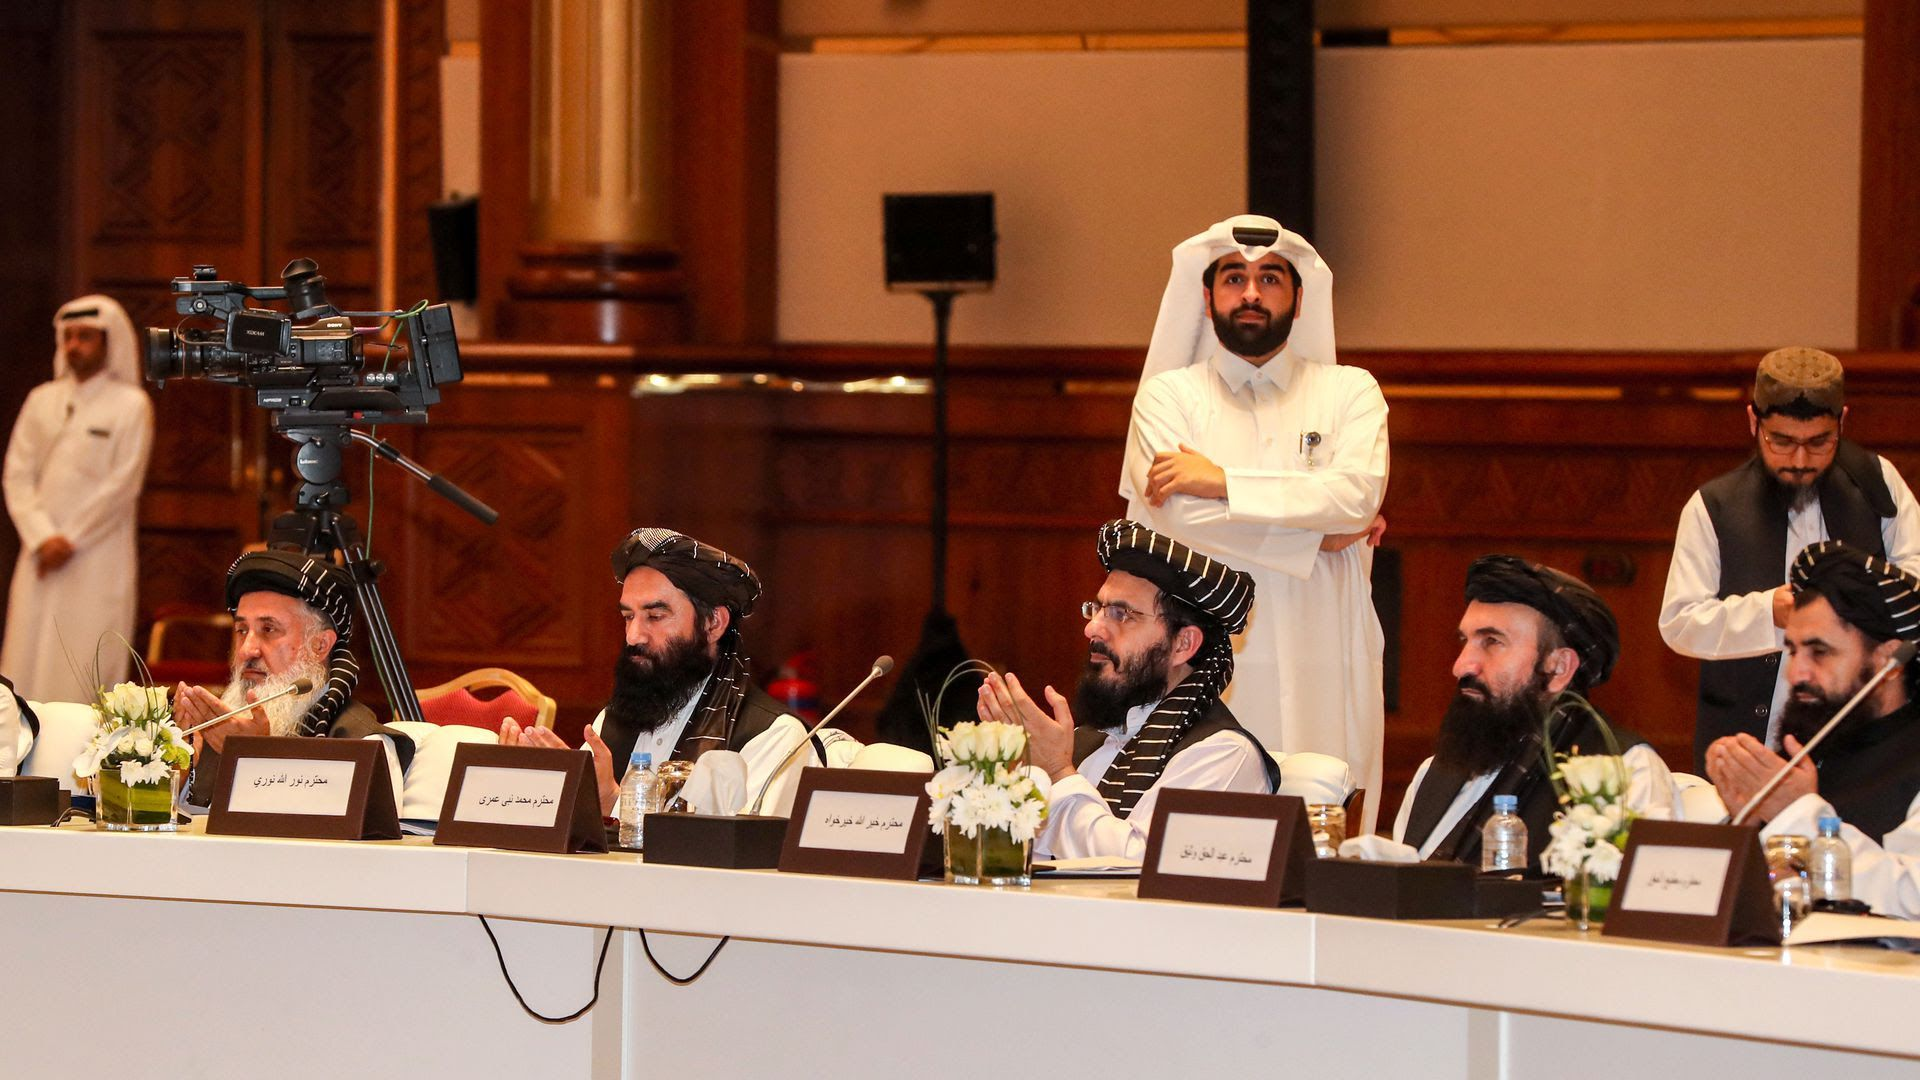 Taliban leaders during peace talks with the U.S. in July in Qatar. Photo: Karim Jaafar/AFP/Getty Images